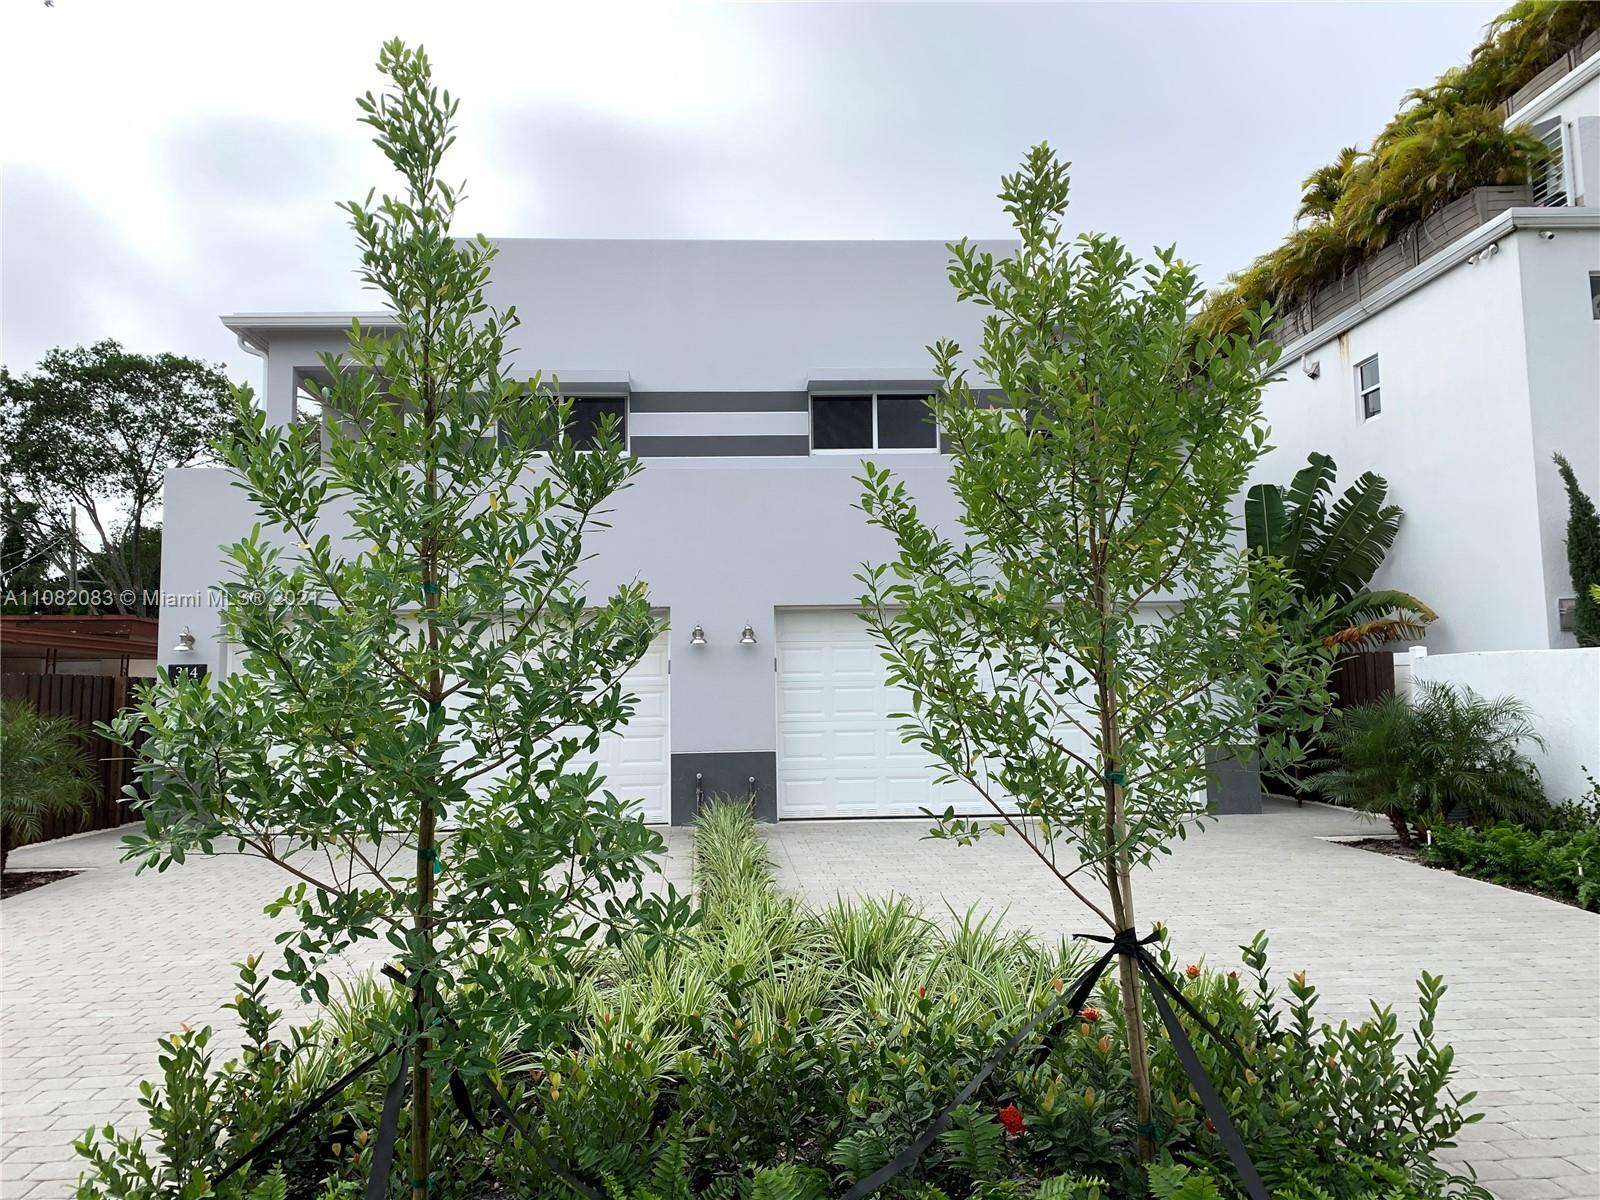 Enjoy living in a beautiful new construction Townhouse built in 2020 with 4 bedrooms and 3 full bathrooms, laminated wood in second floor, nice, private courtyard, ample parking in garage and private driveway. No HOA. Close to airport, Las Olas dining and entertainment and a short drive to Fort Lauderdale Beach.